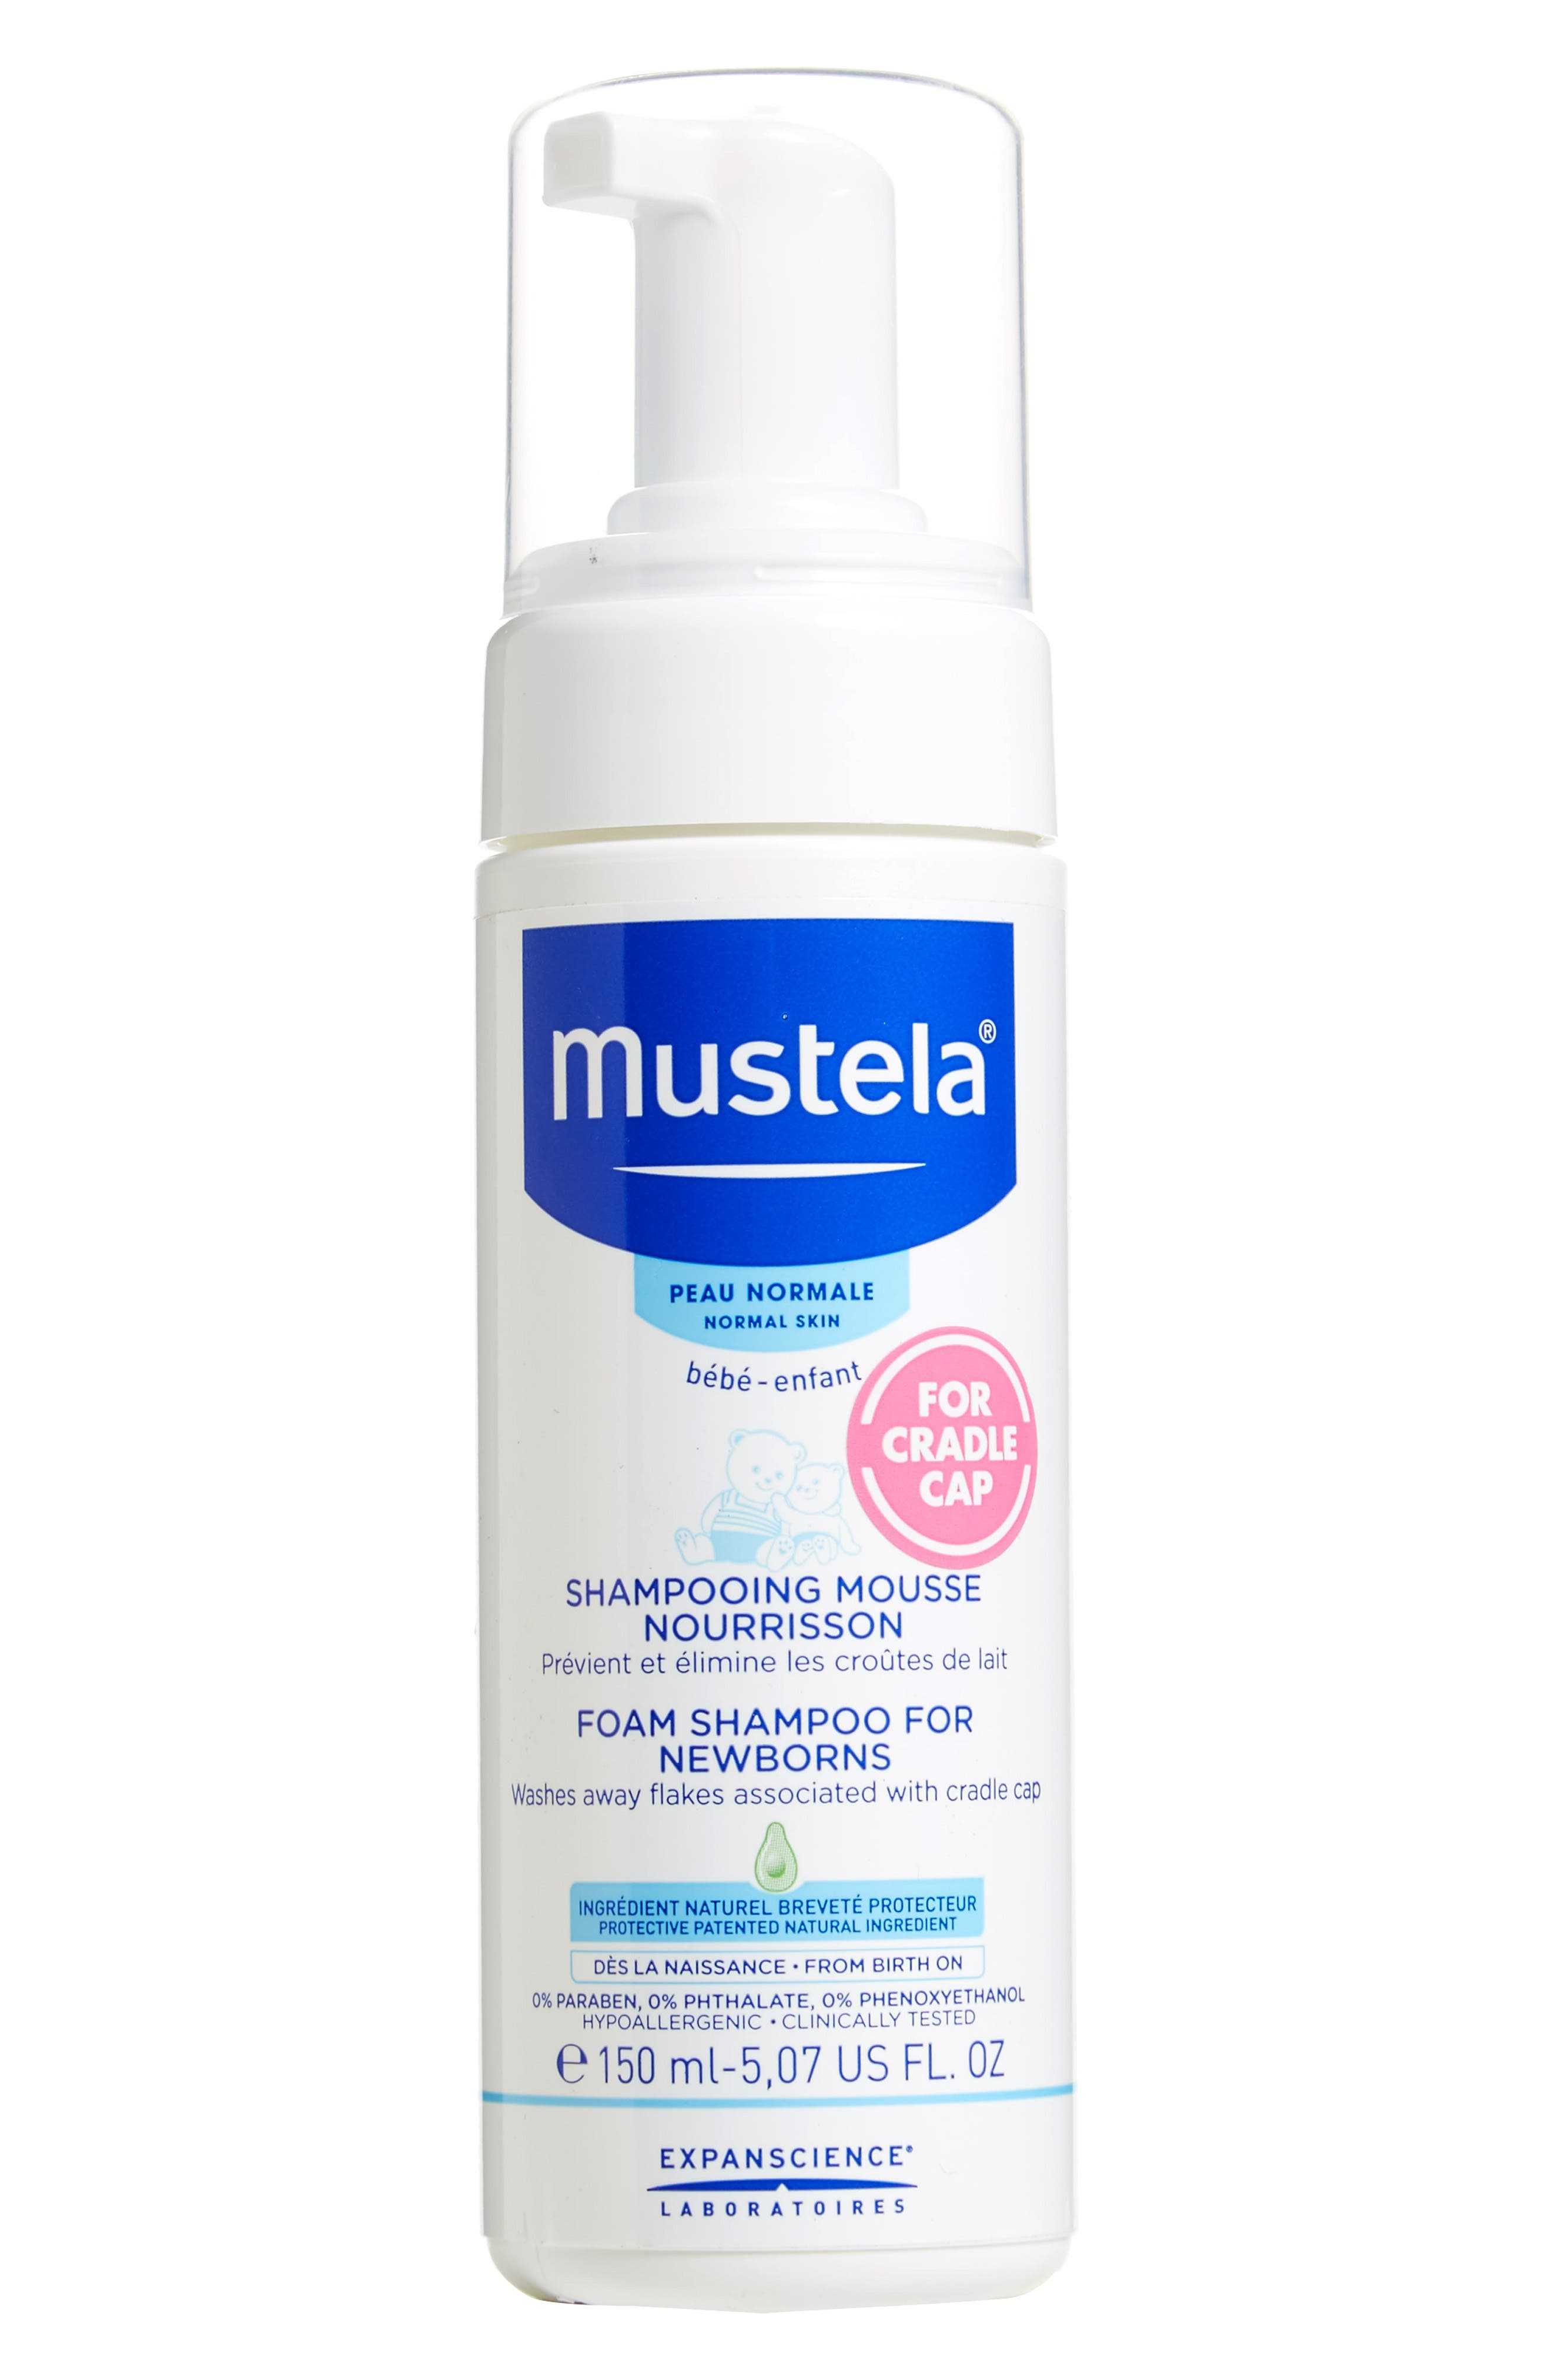 Mustela® Foam Shampoo for Newborns